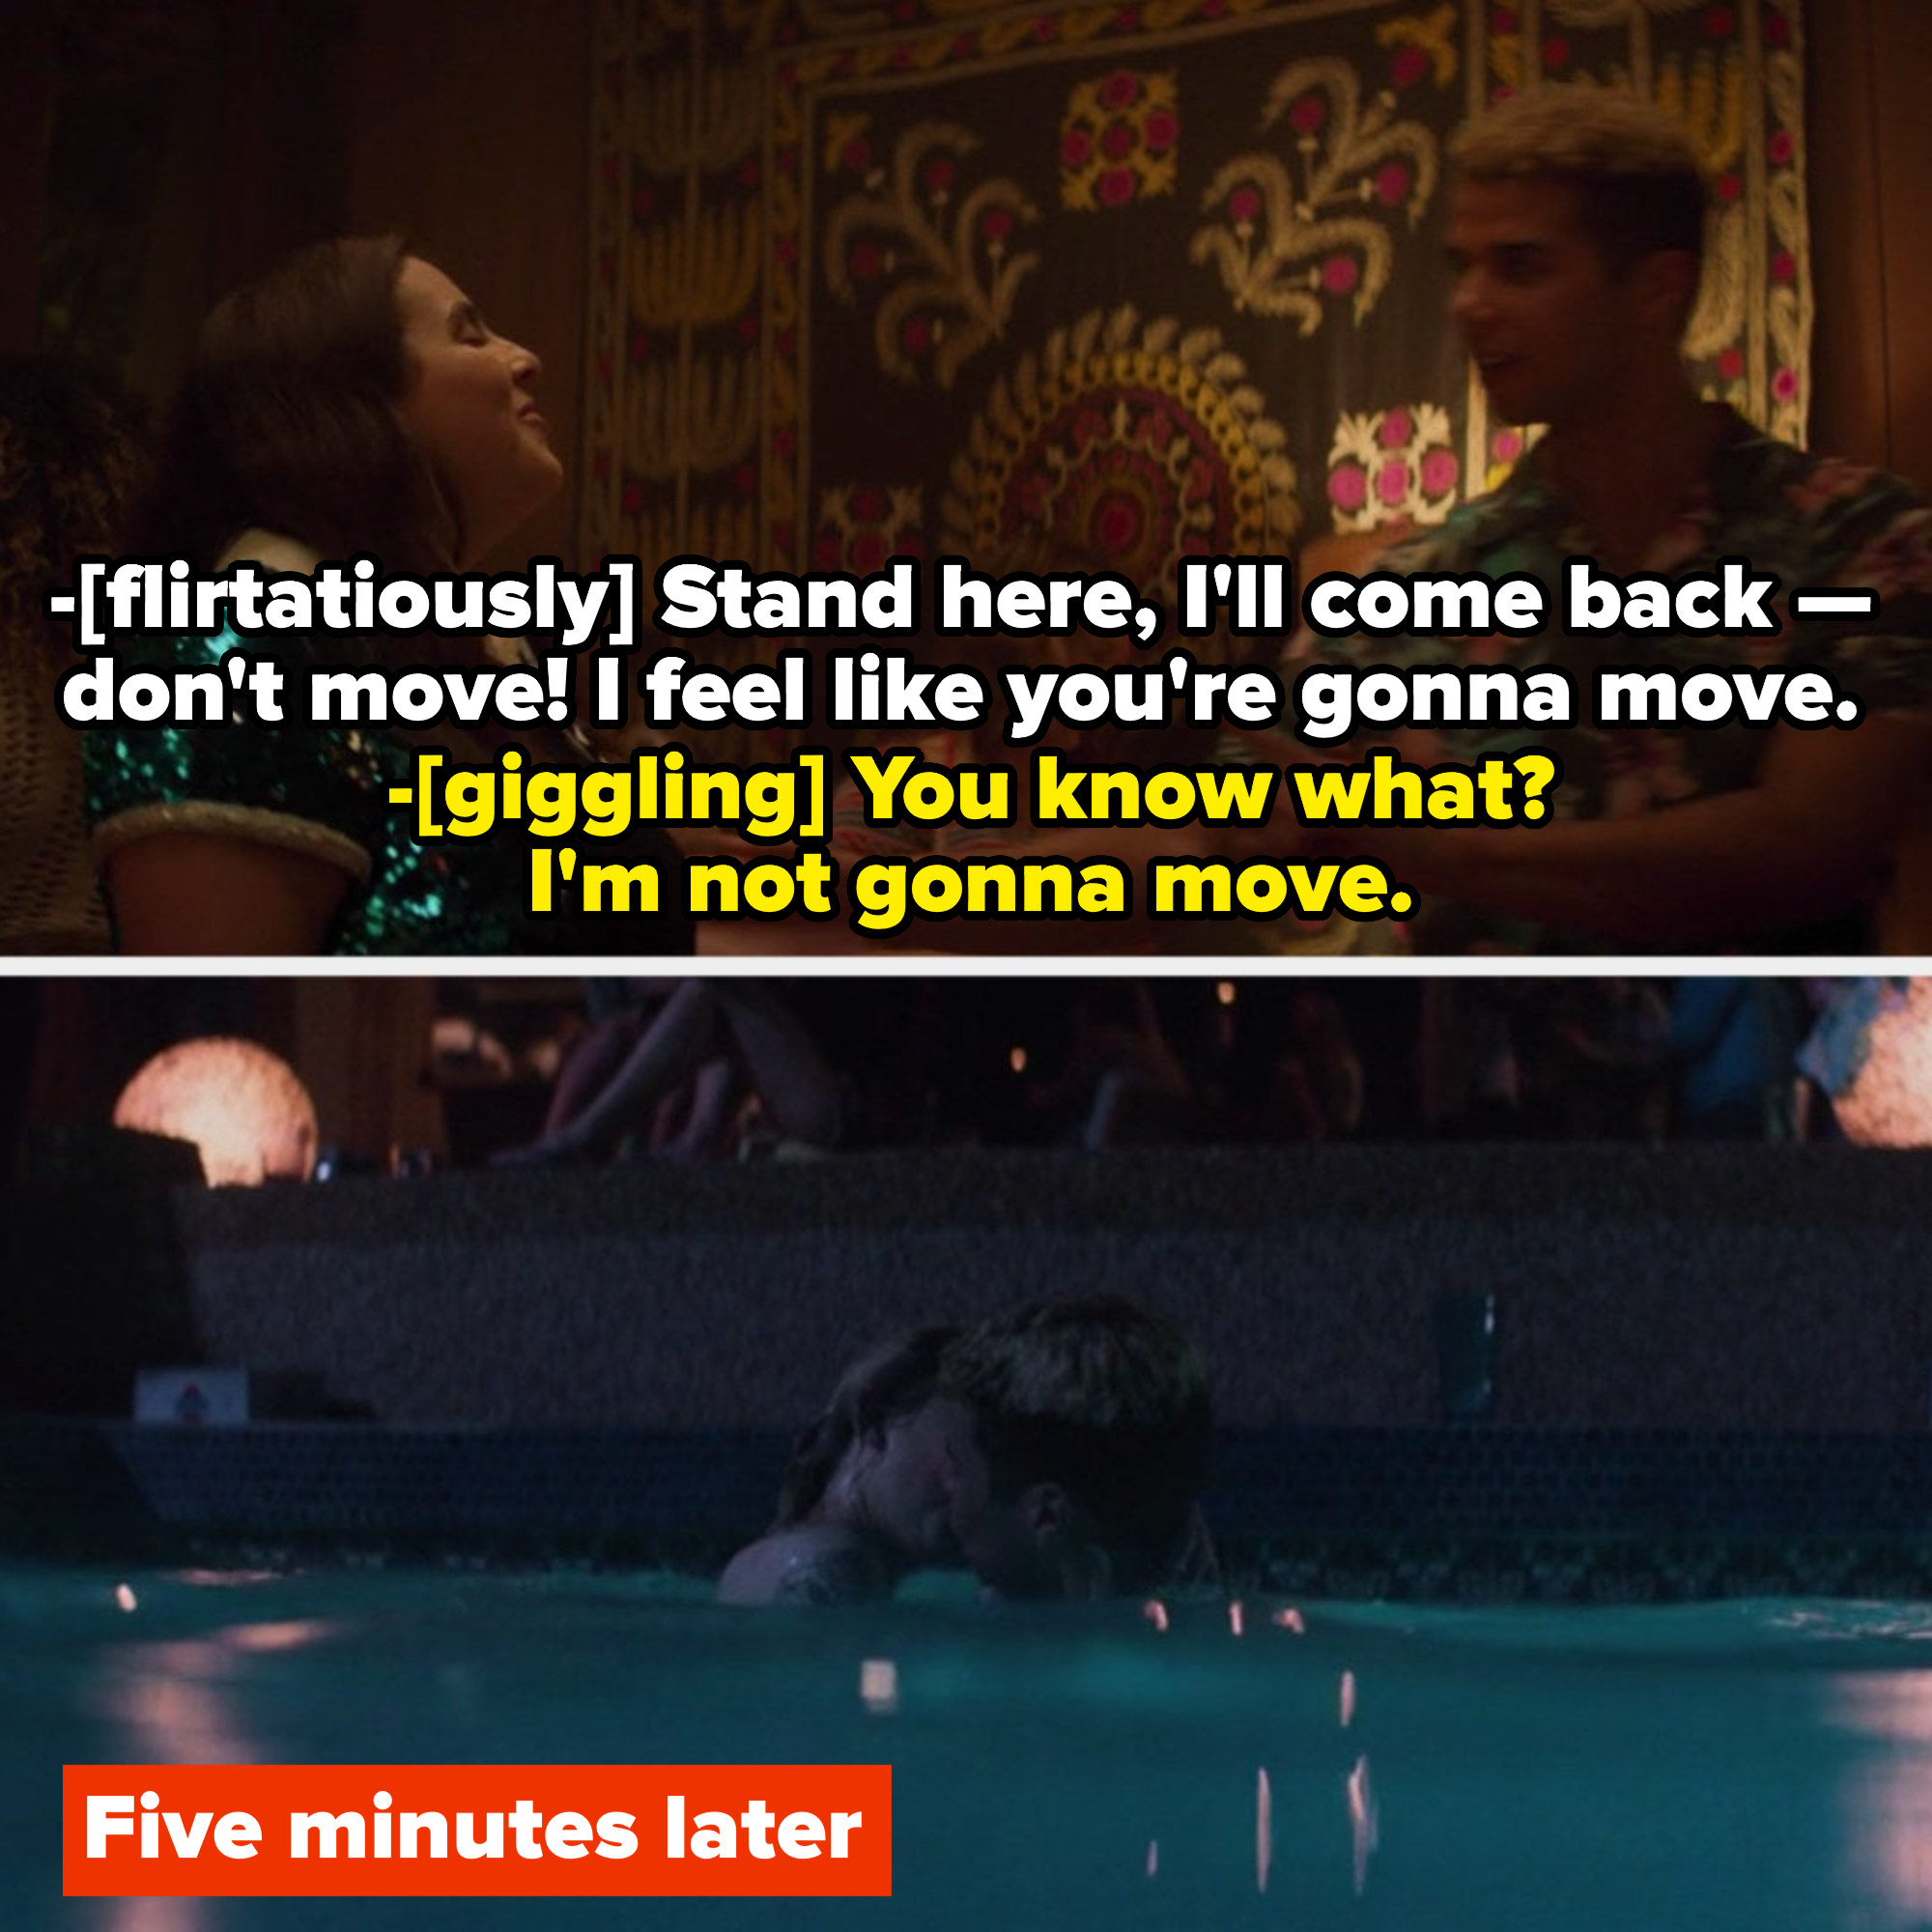 Nick and Molly flirting with each other while playing ping pong; Nick and Ryan making out at night in the pool